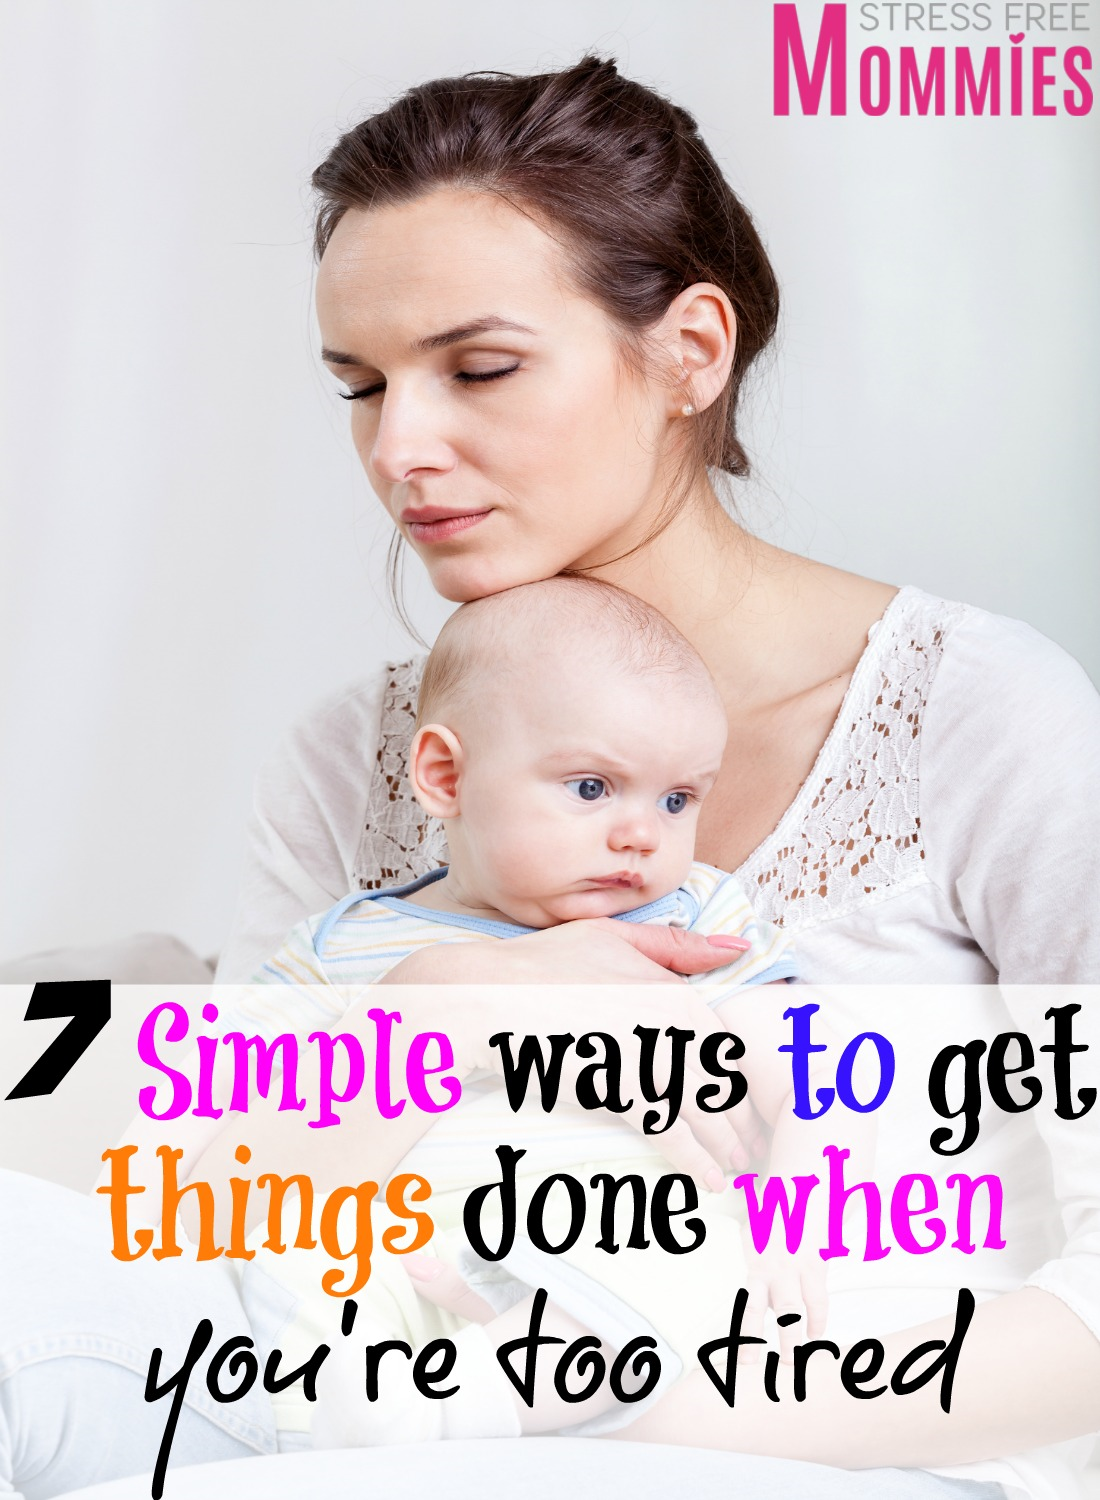 Motivational tips for moms to be more productive and get things done around the house. Helpful tips you can implement today! #momtips #productivity #motivational